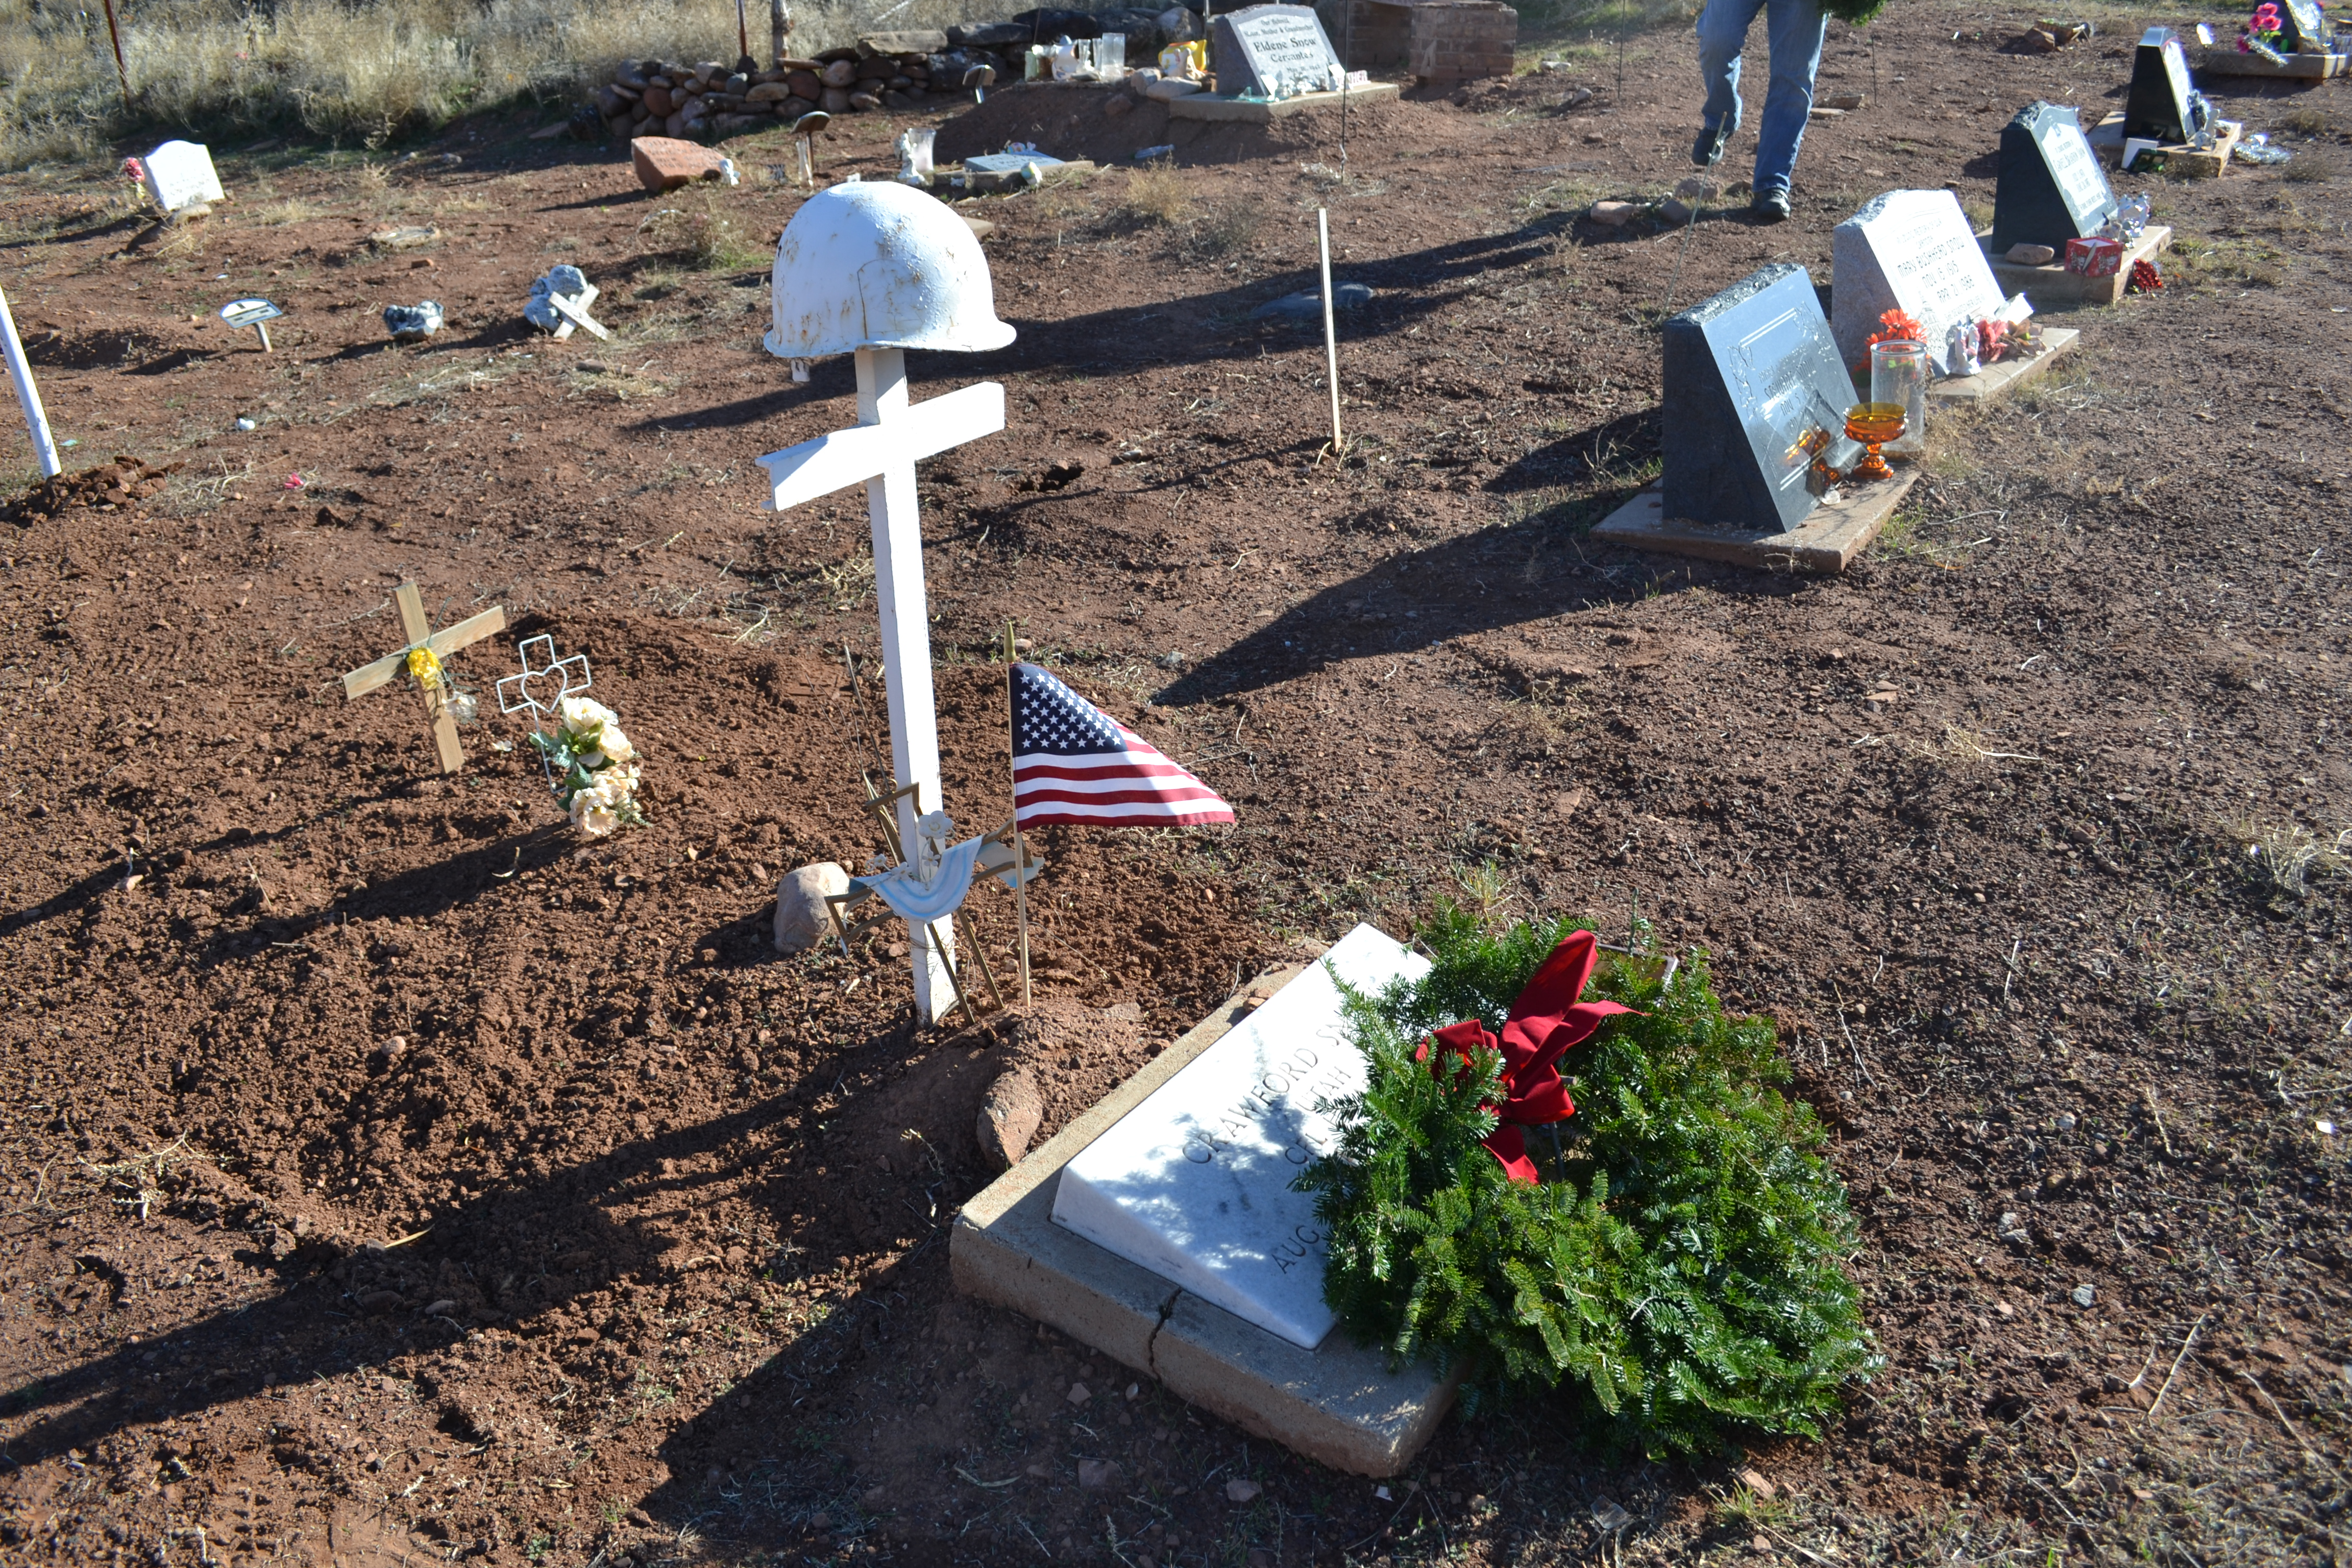 A wreath is laid at the grave of Crawford Snow, Shivwits, Utah, Dec. 17, 2016 | Photo by Joseph Witham, St. George News